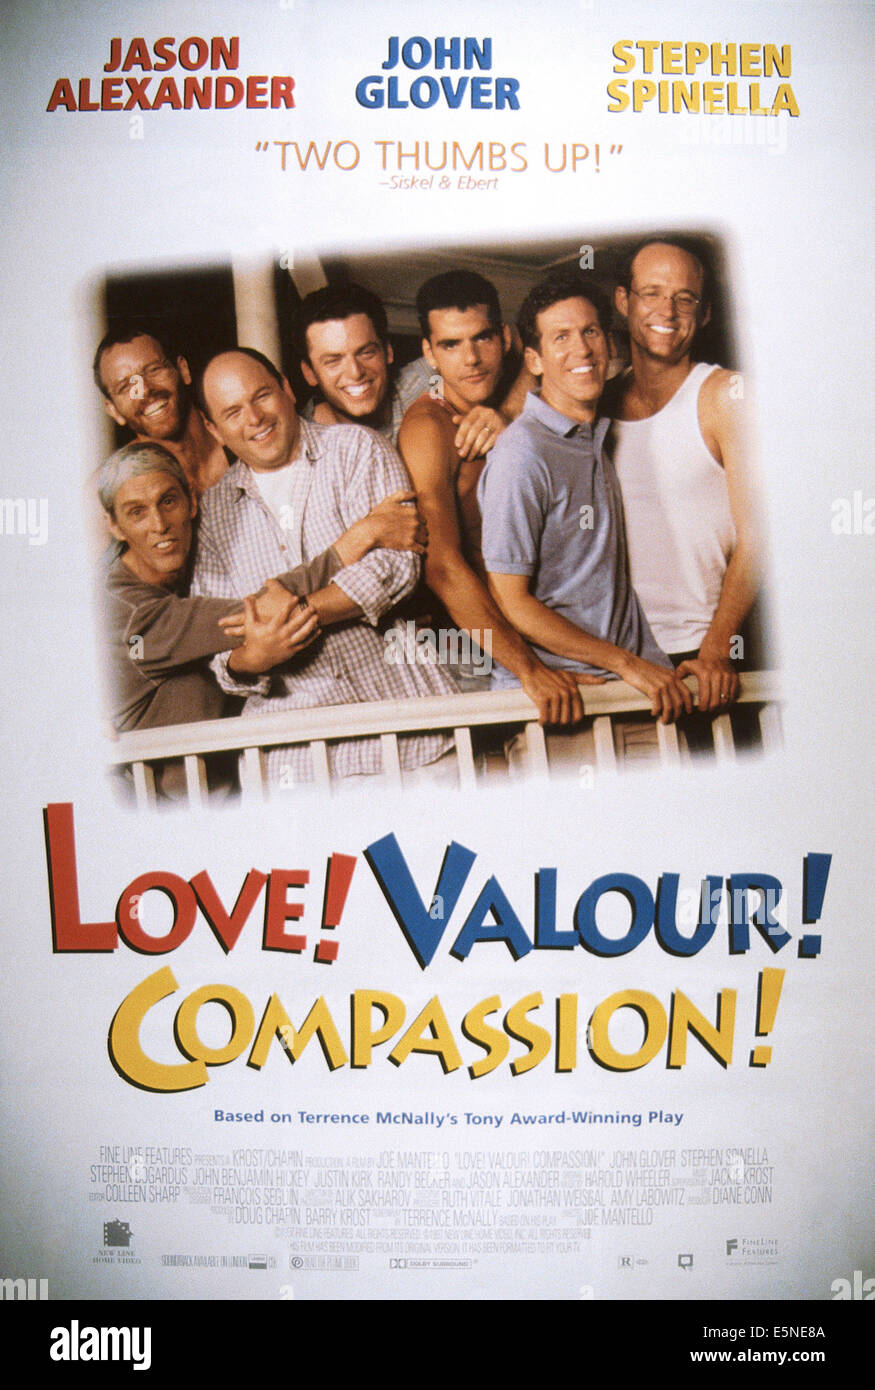 john glover stock photos john glover stock images alamy compassion u s poster left to right john glover